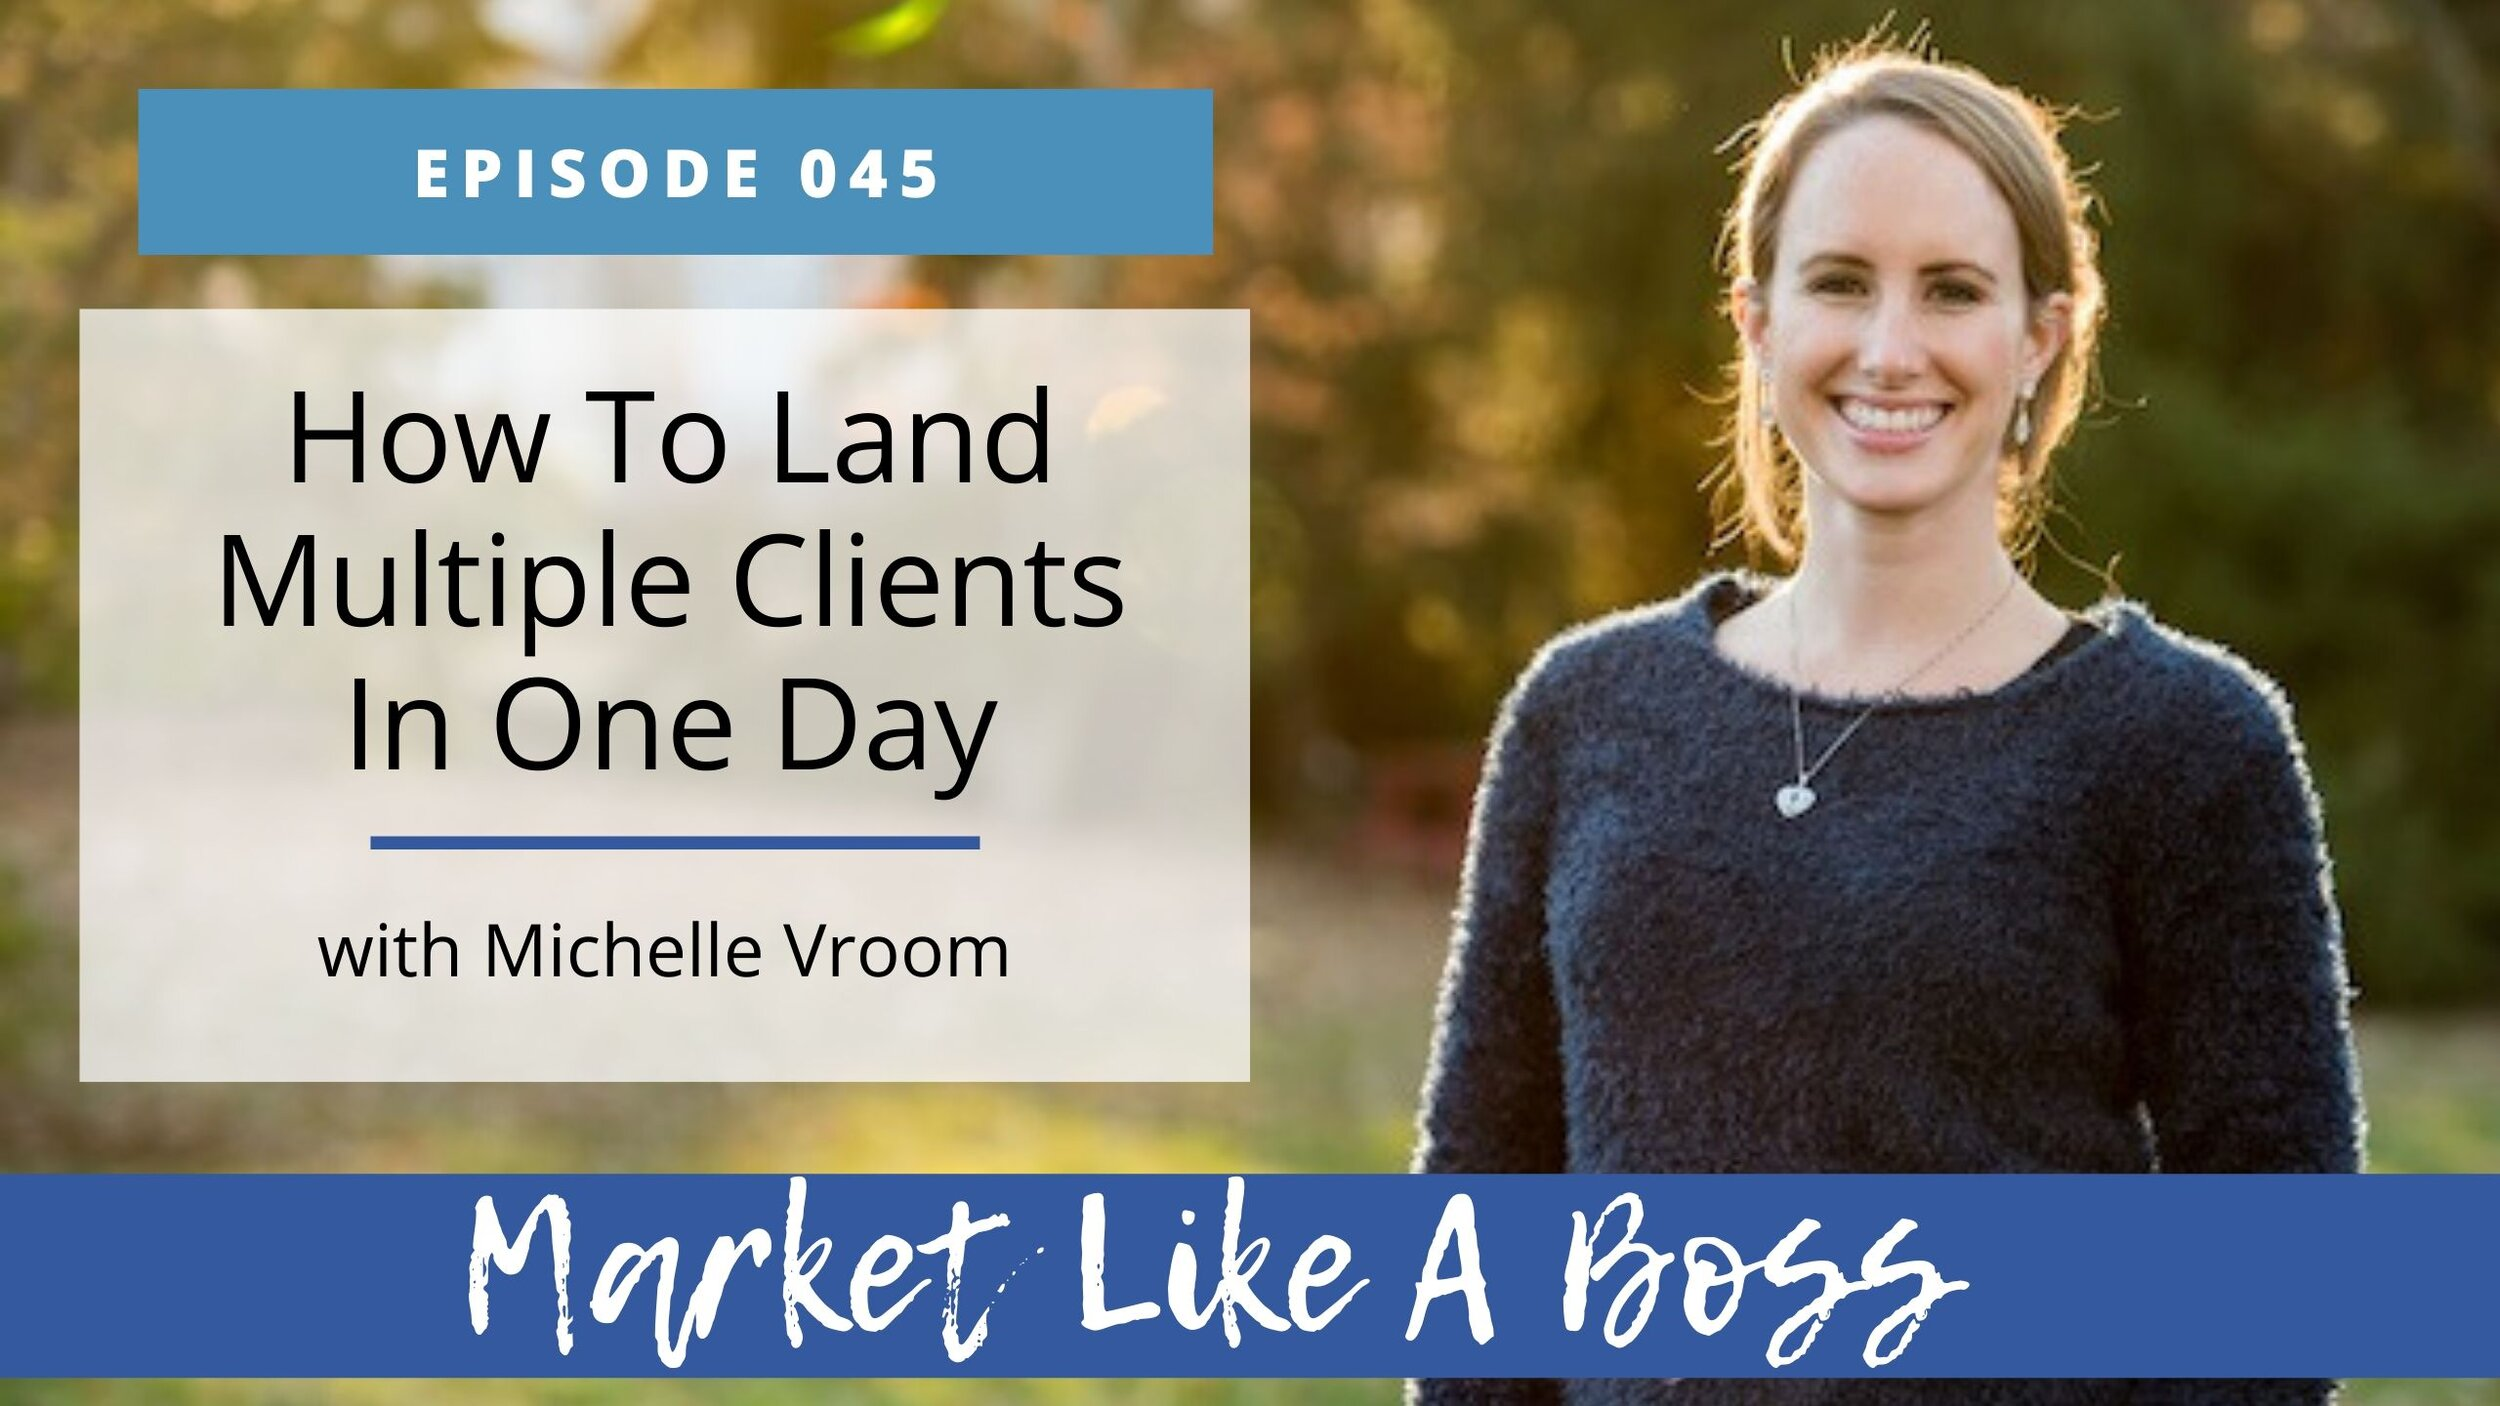 Episode 045 How To Land Multiple Clients In One Day Blog.jpg